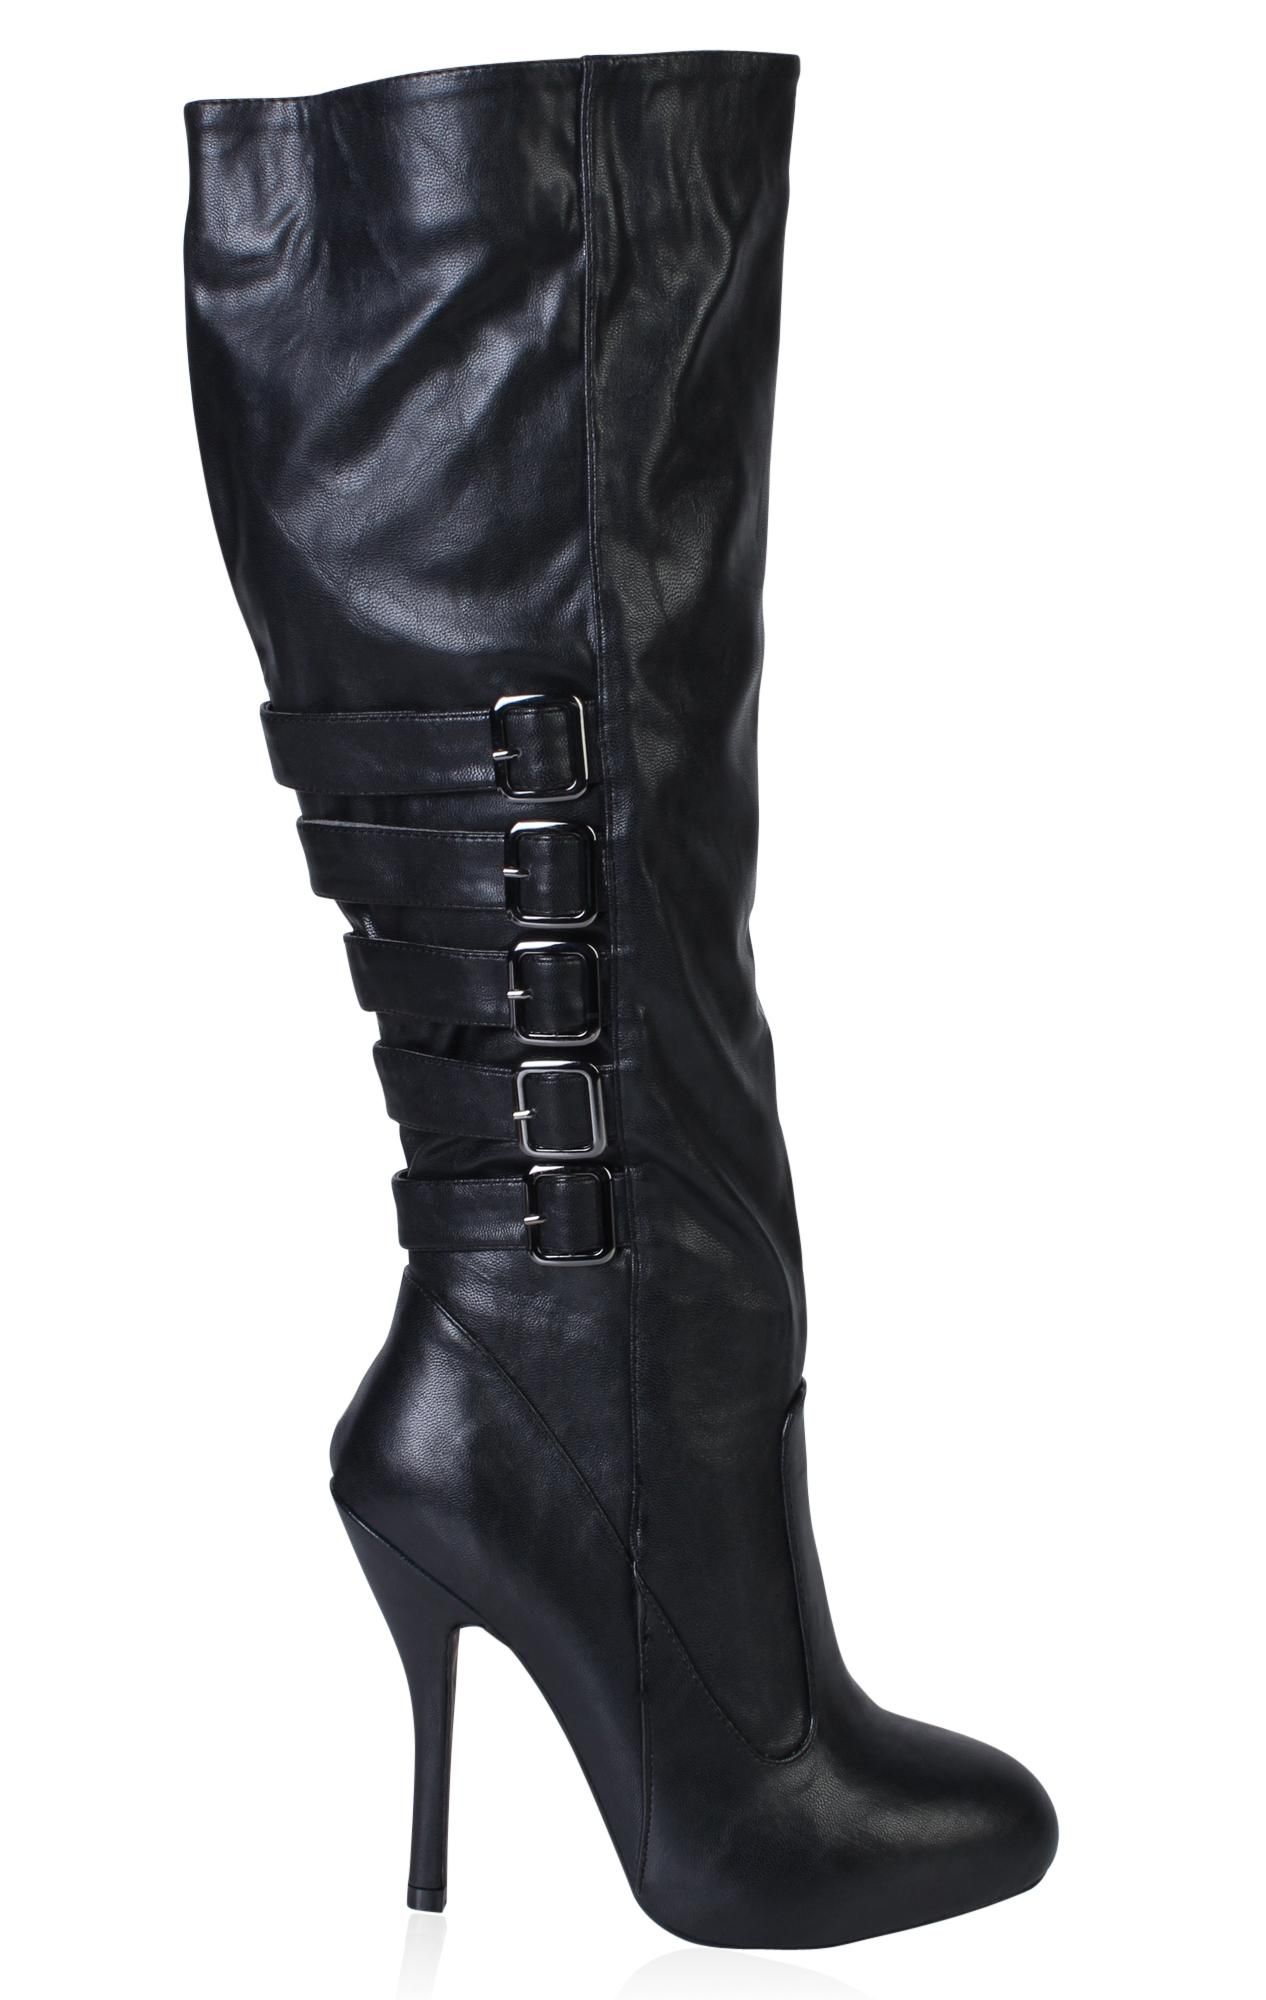 faux leather high heel boot Leather high heels, Leather